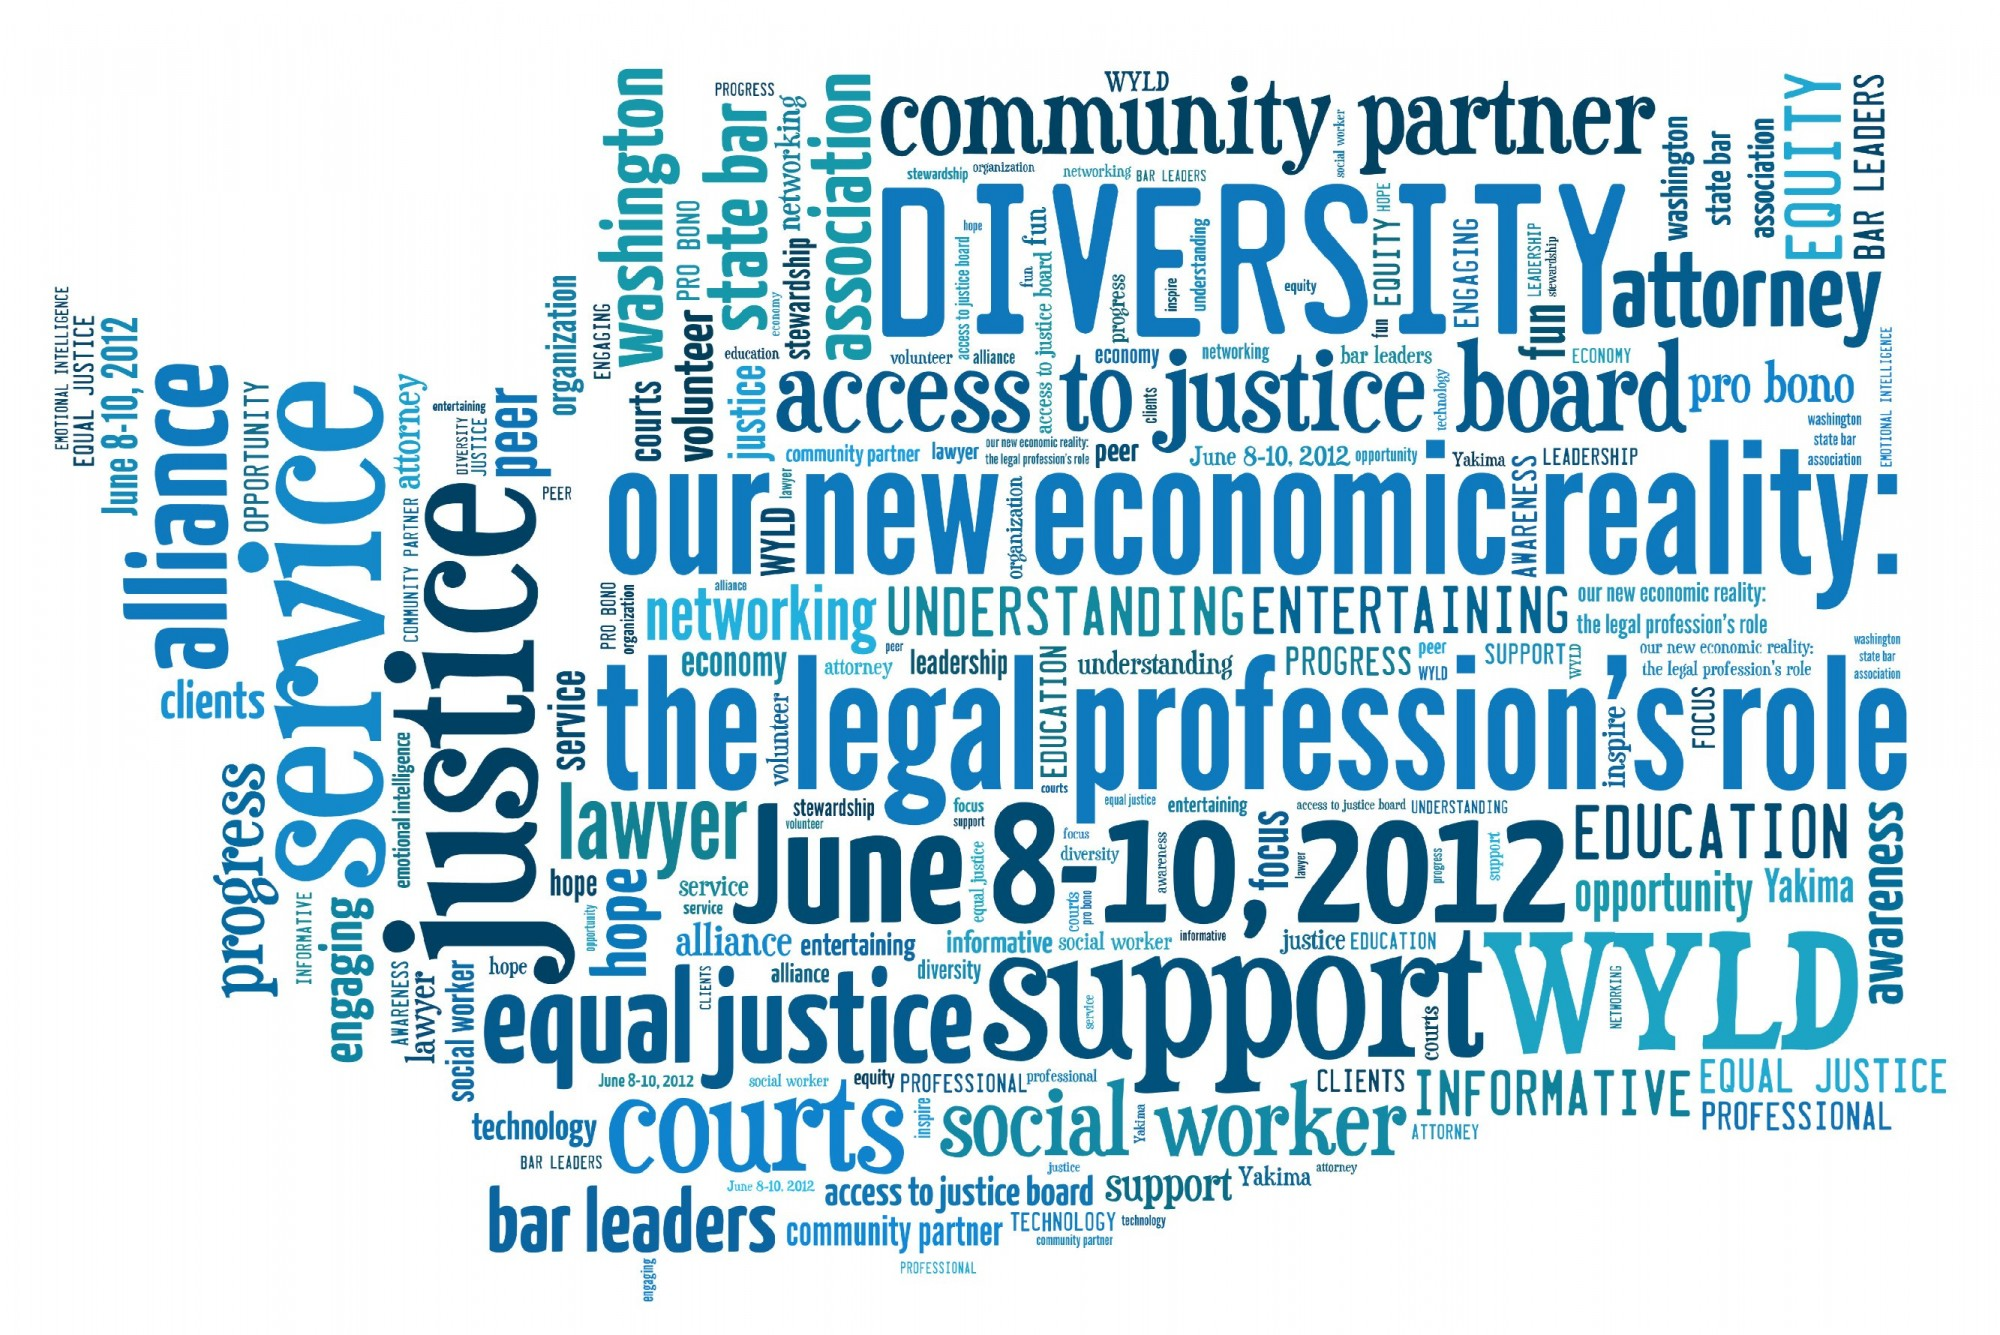 image of word cloud